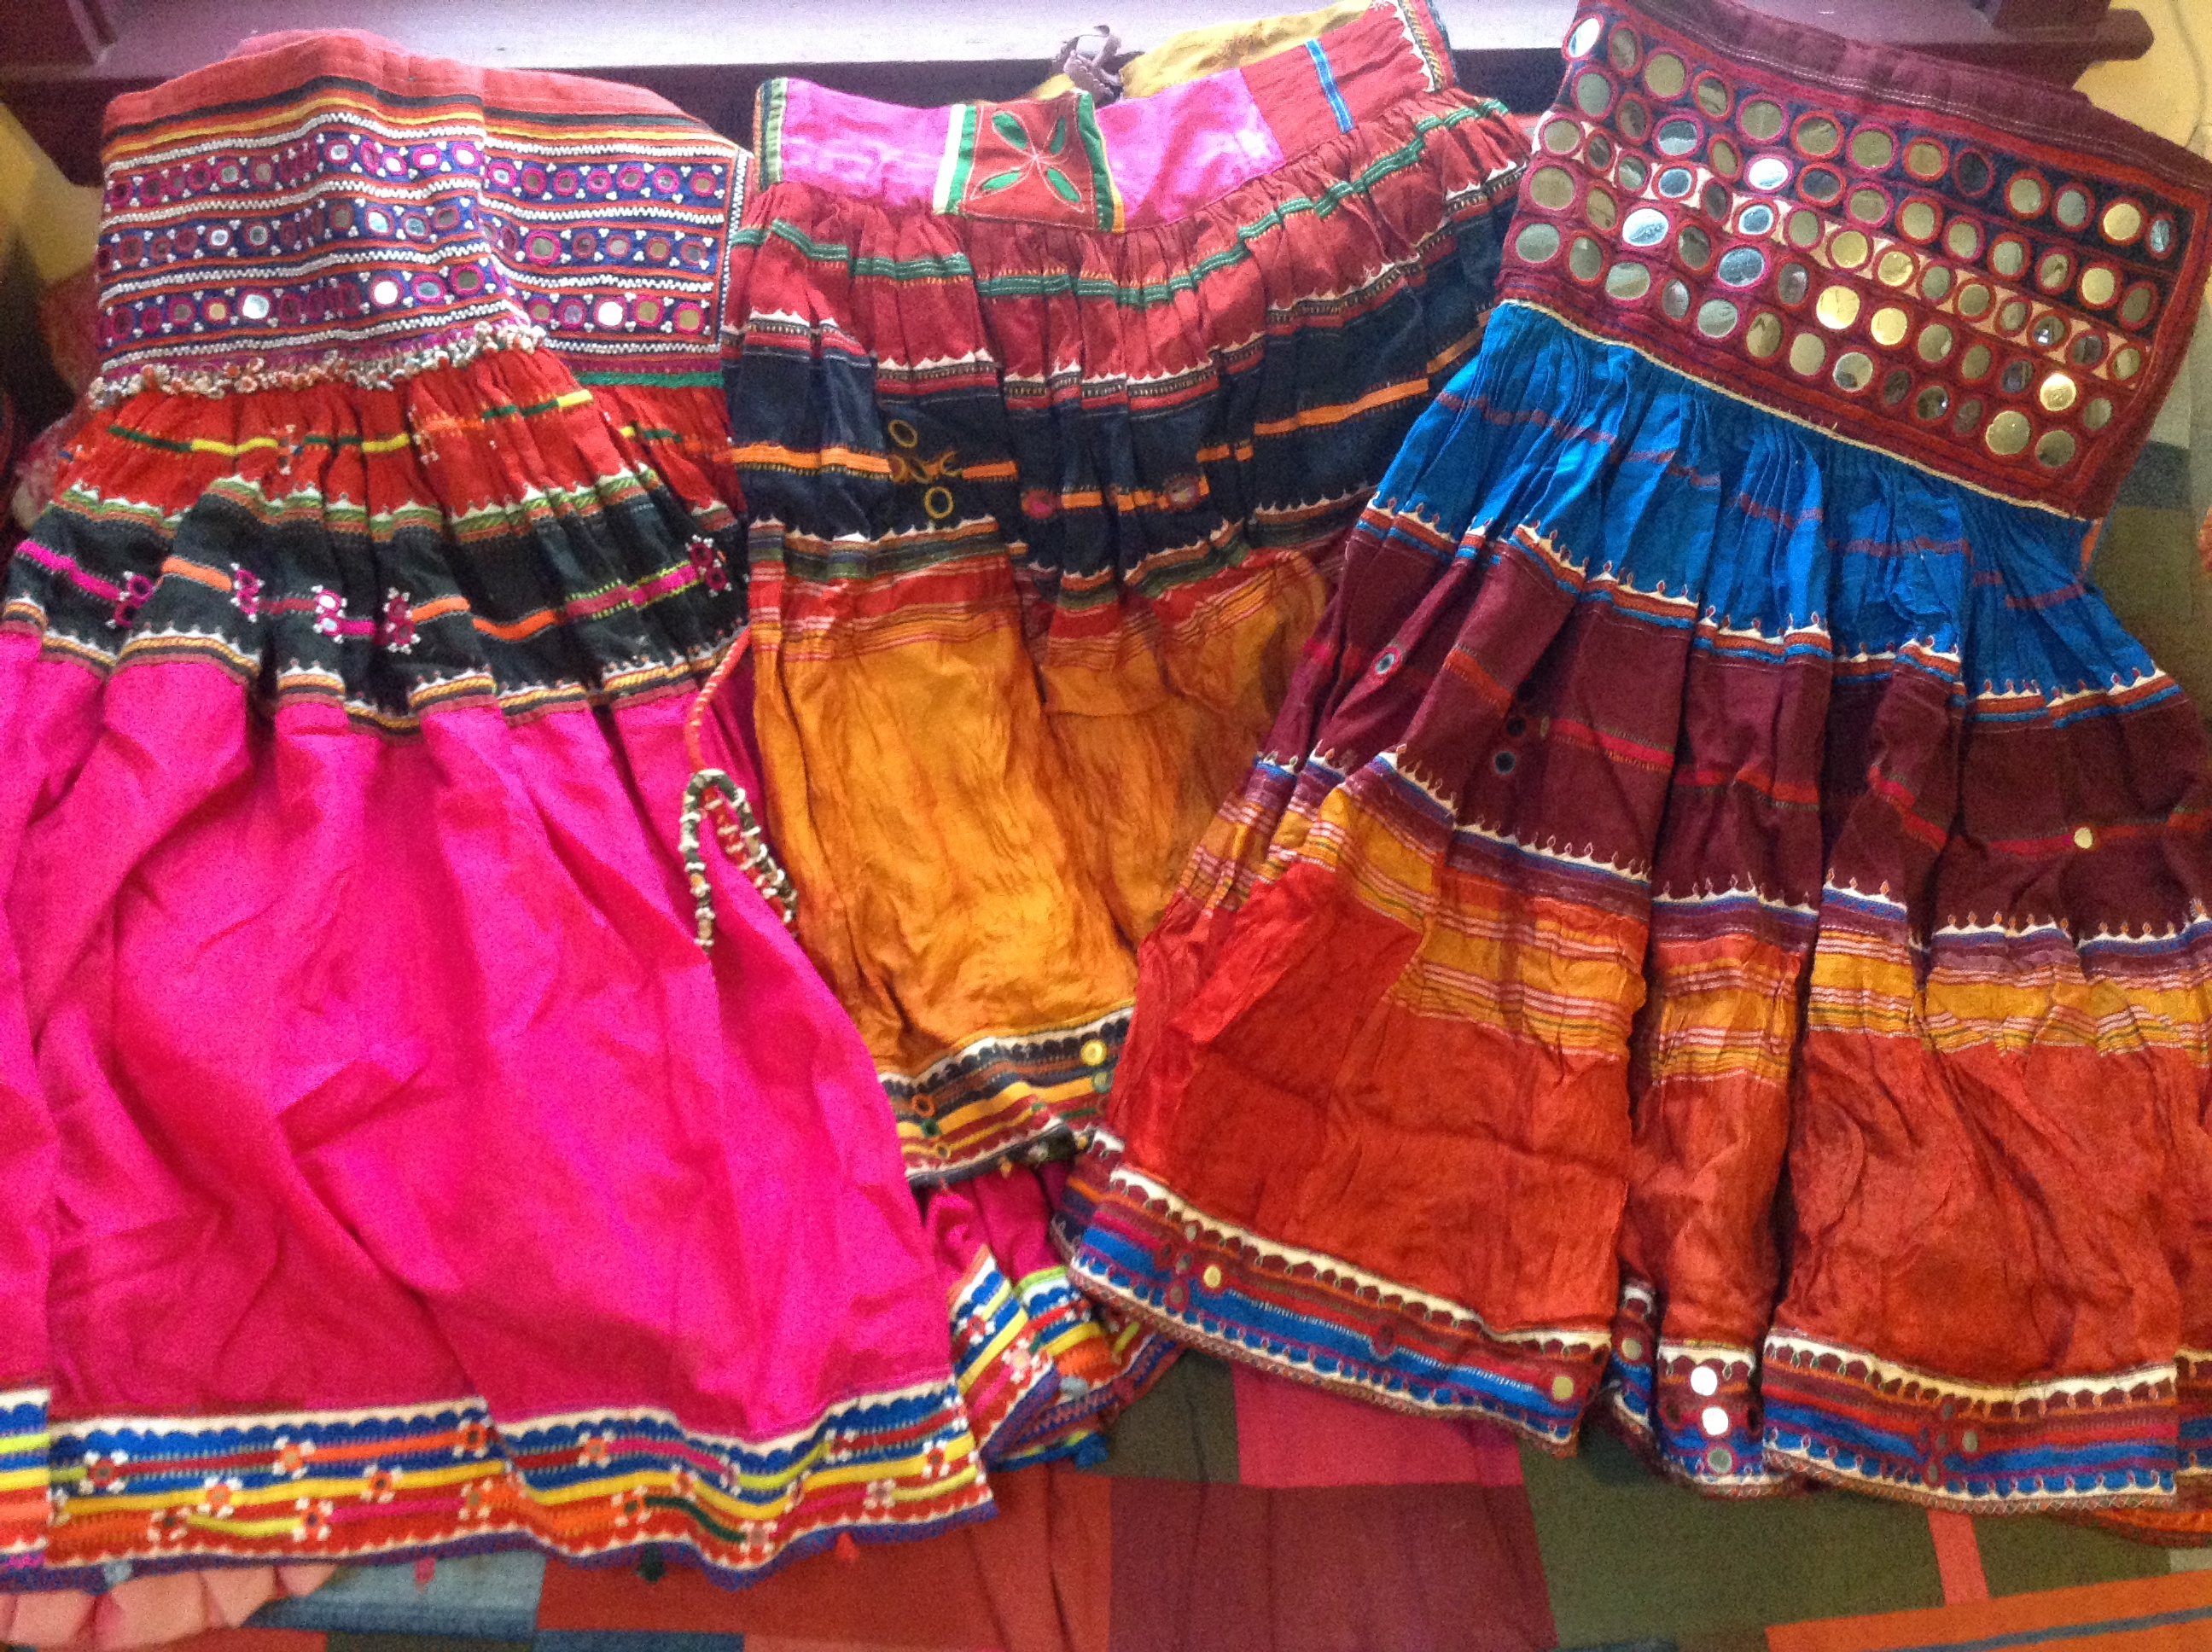 Skirts Photo Credit: Nika Feldman